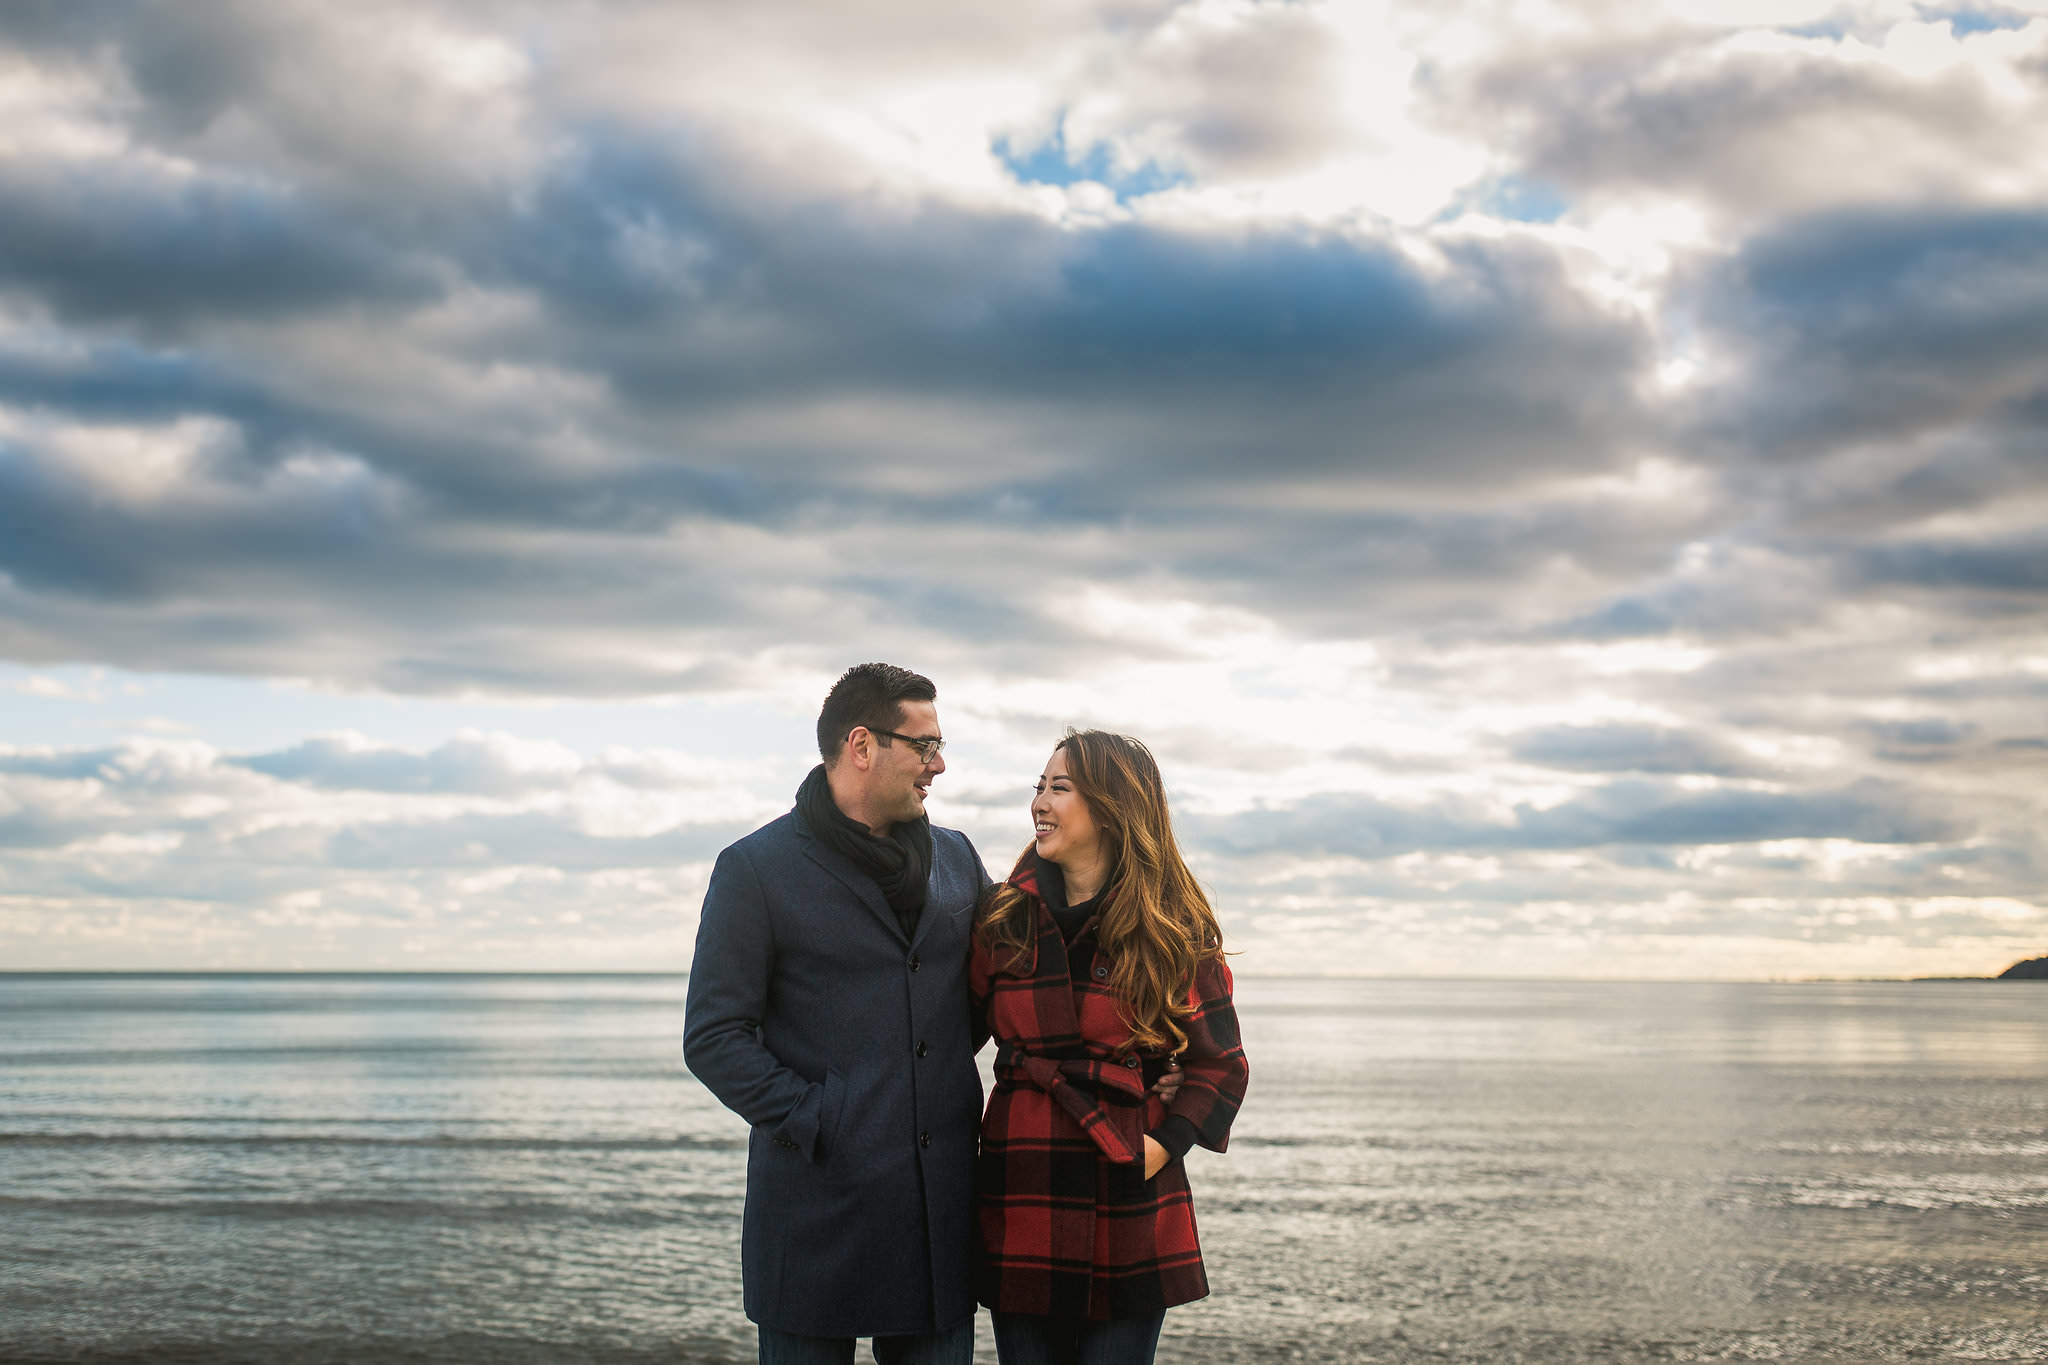 scarborough bluffs engagement photos, scarborough bluffs engagement, the bluffs engagement, engagement photo locations in scarborough